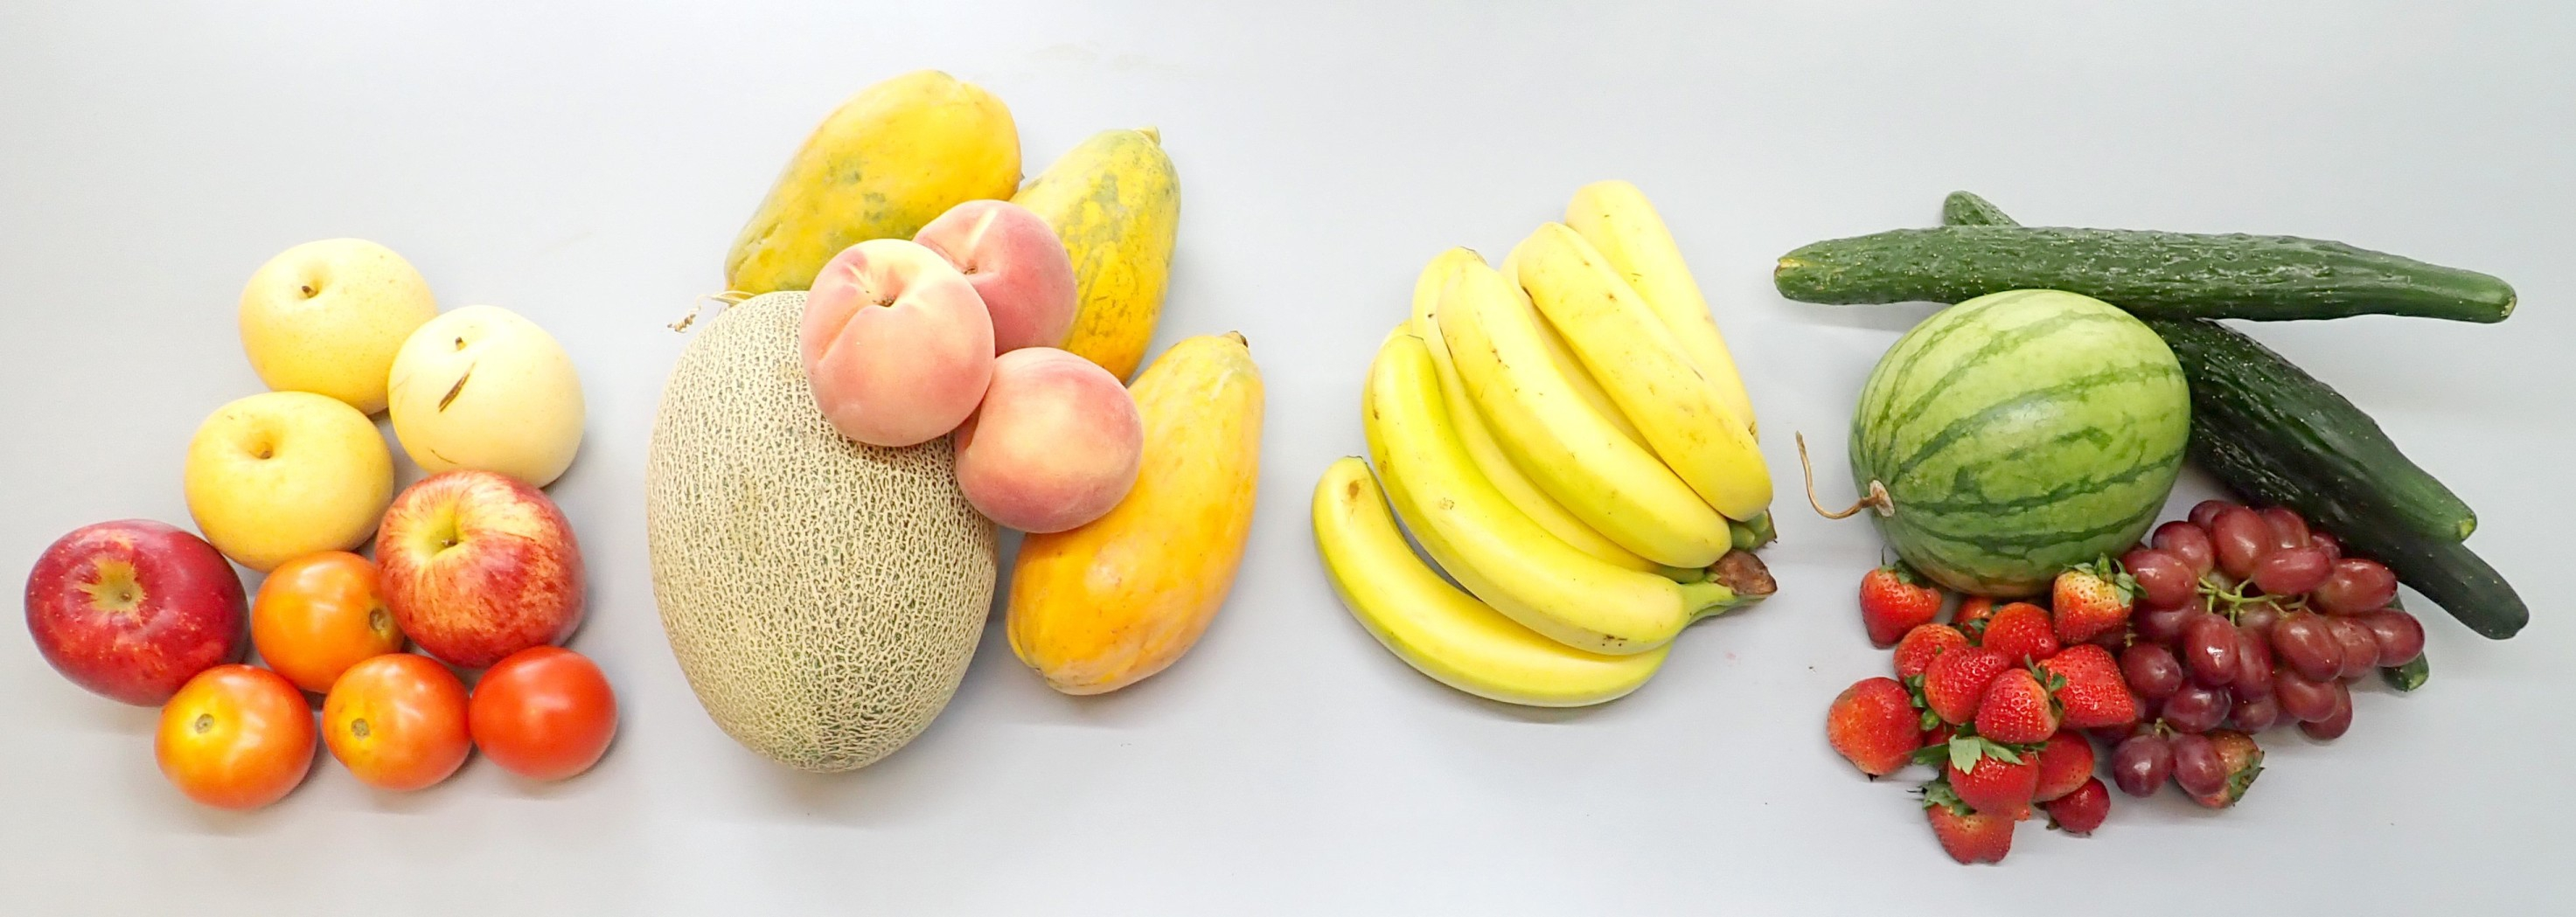 Eudicots fruits apple, pear and tomato (1st from left) evolve their fruits using duplicated floral identity genes, while melon, peach and papaya (2nd from left) utilise existing senescence genes. The monocot banana (2nd from right) uses both to form two interconnected circuits. Eudicots fruits such as watermelon, cucumber, grape and strawberry (1st from right) evolve a different ripening system that is ethylene independent.